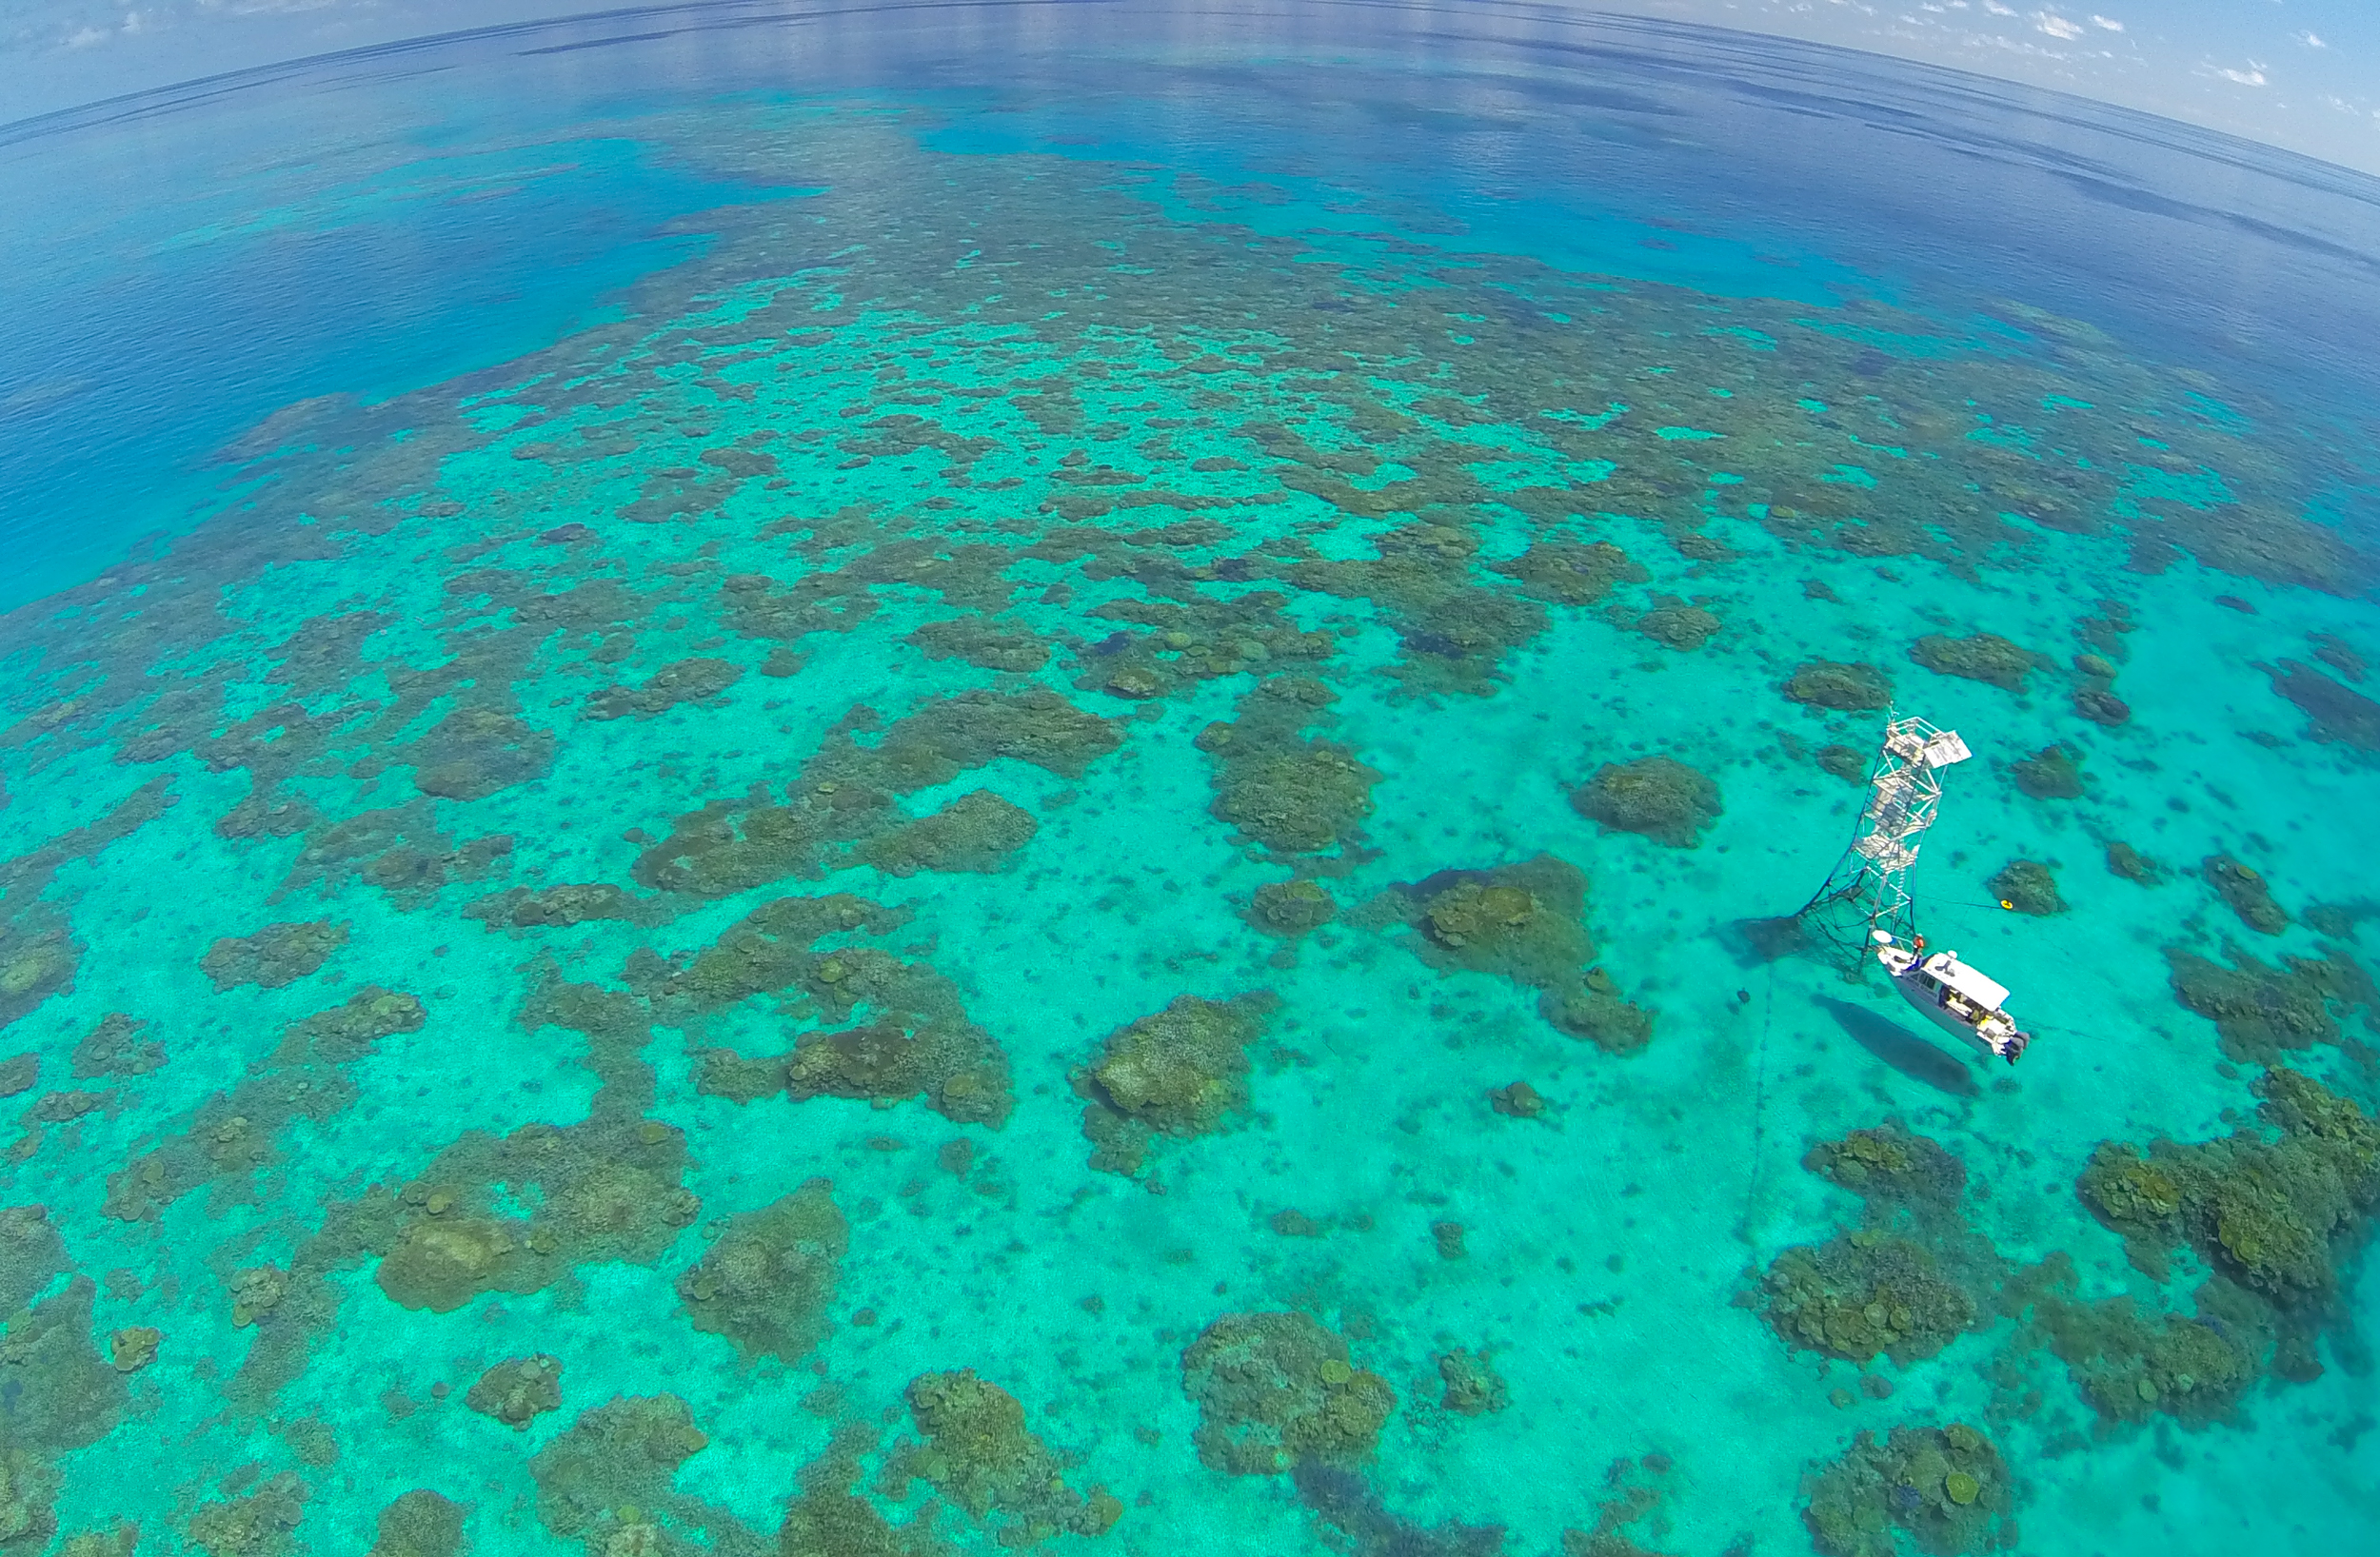 Monitoring Reef Condition on the Great Barrier Reef